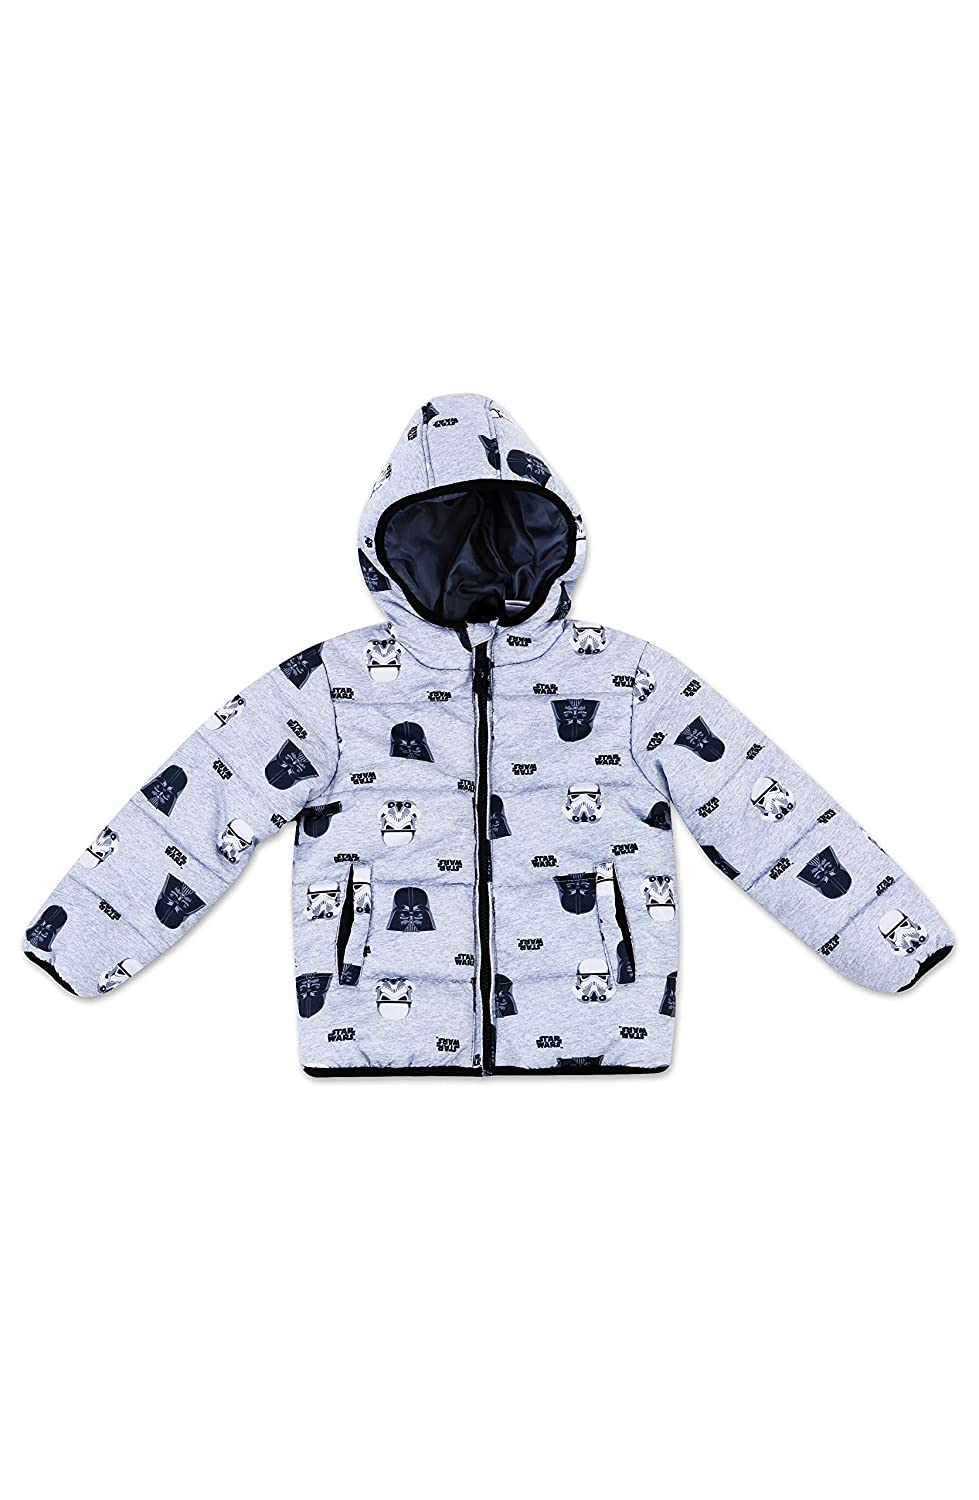 Dreamwave Boys' Winter Puffer Outerwear Jacket with Hood Pockets and Zipper UPF 50 Long Lasting High Performance